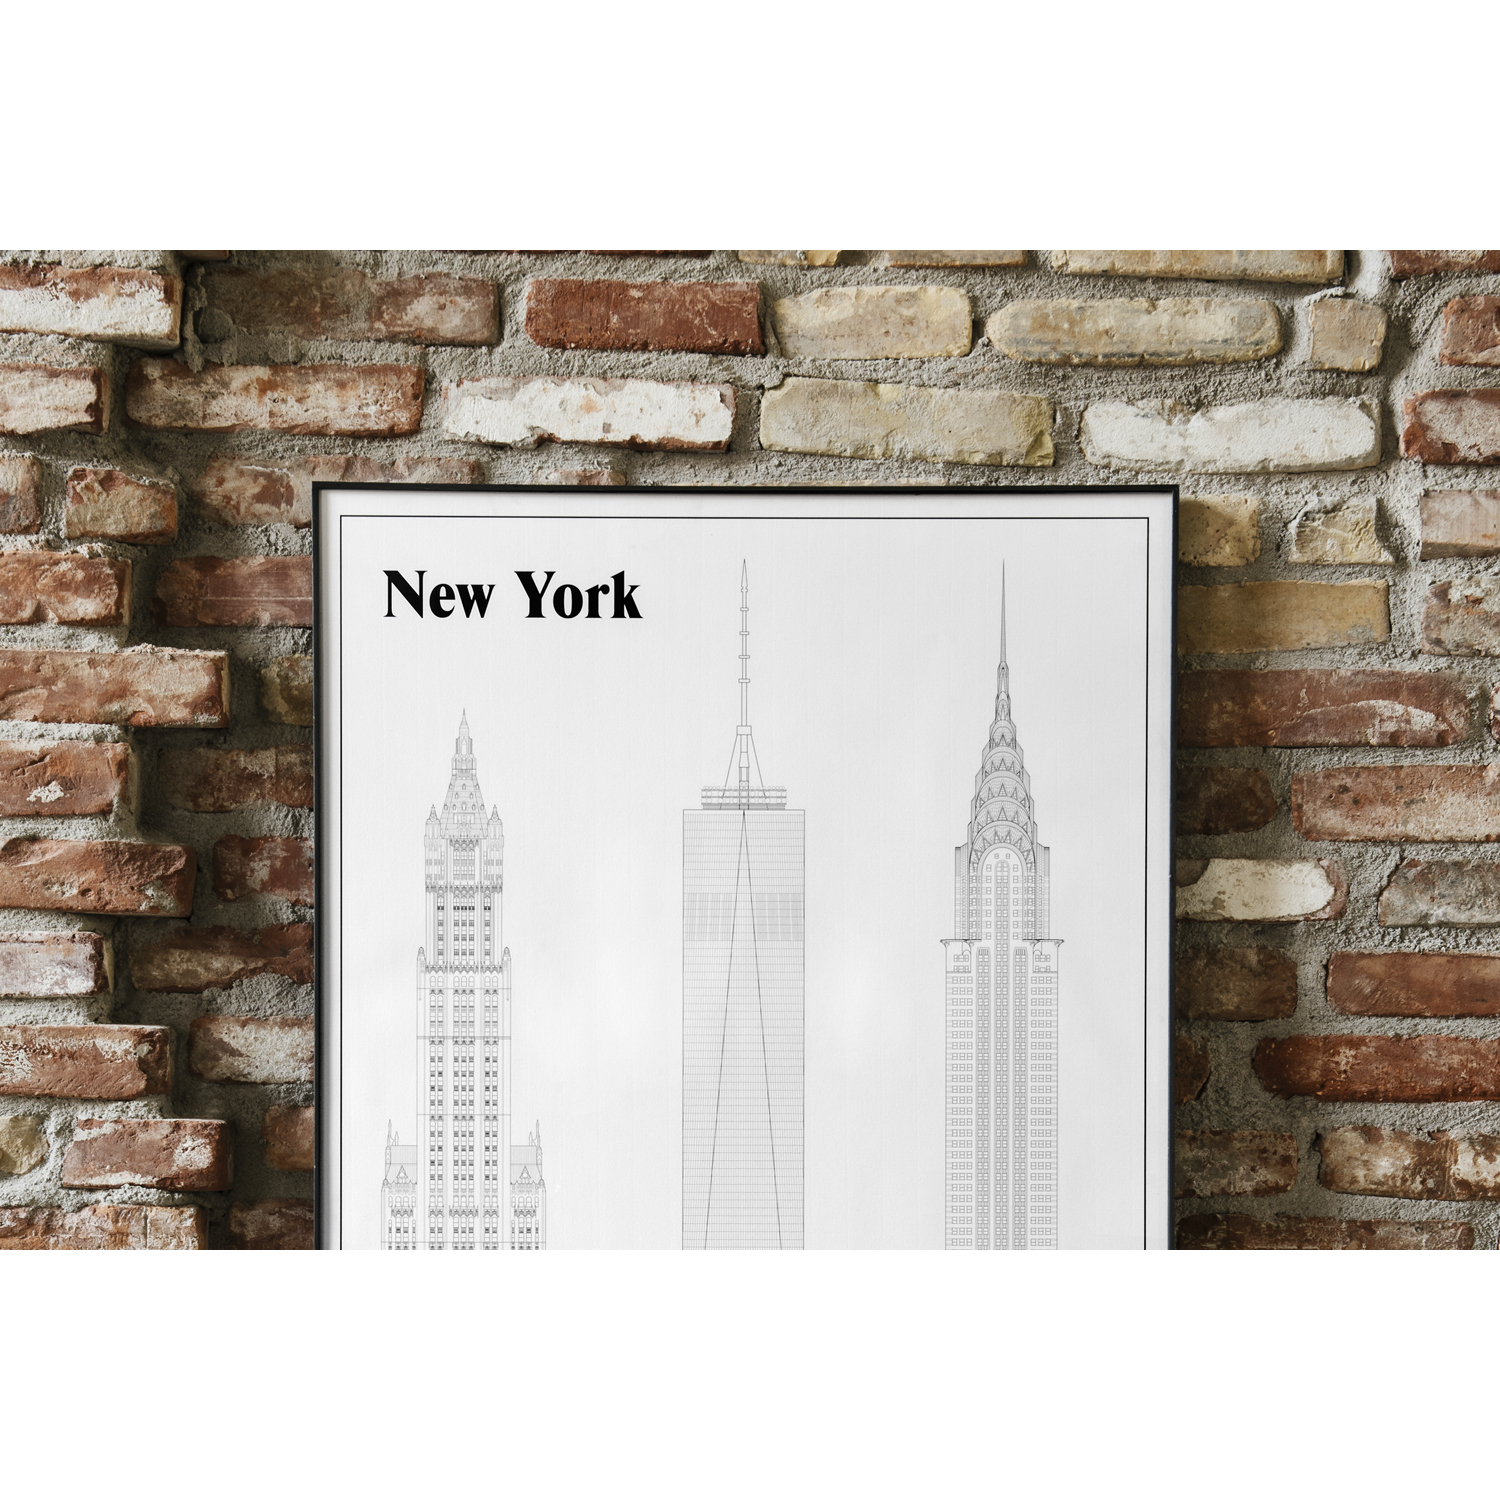 New York Elevations poster